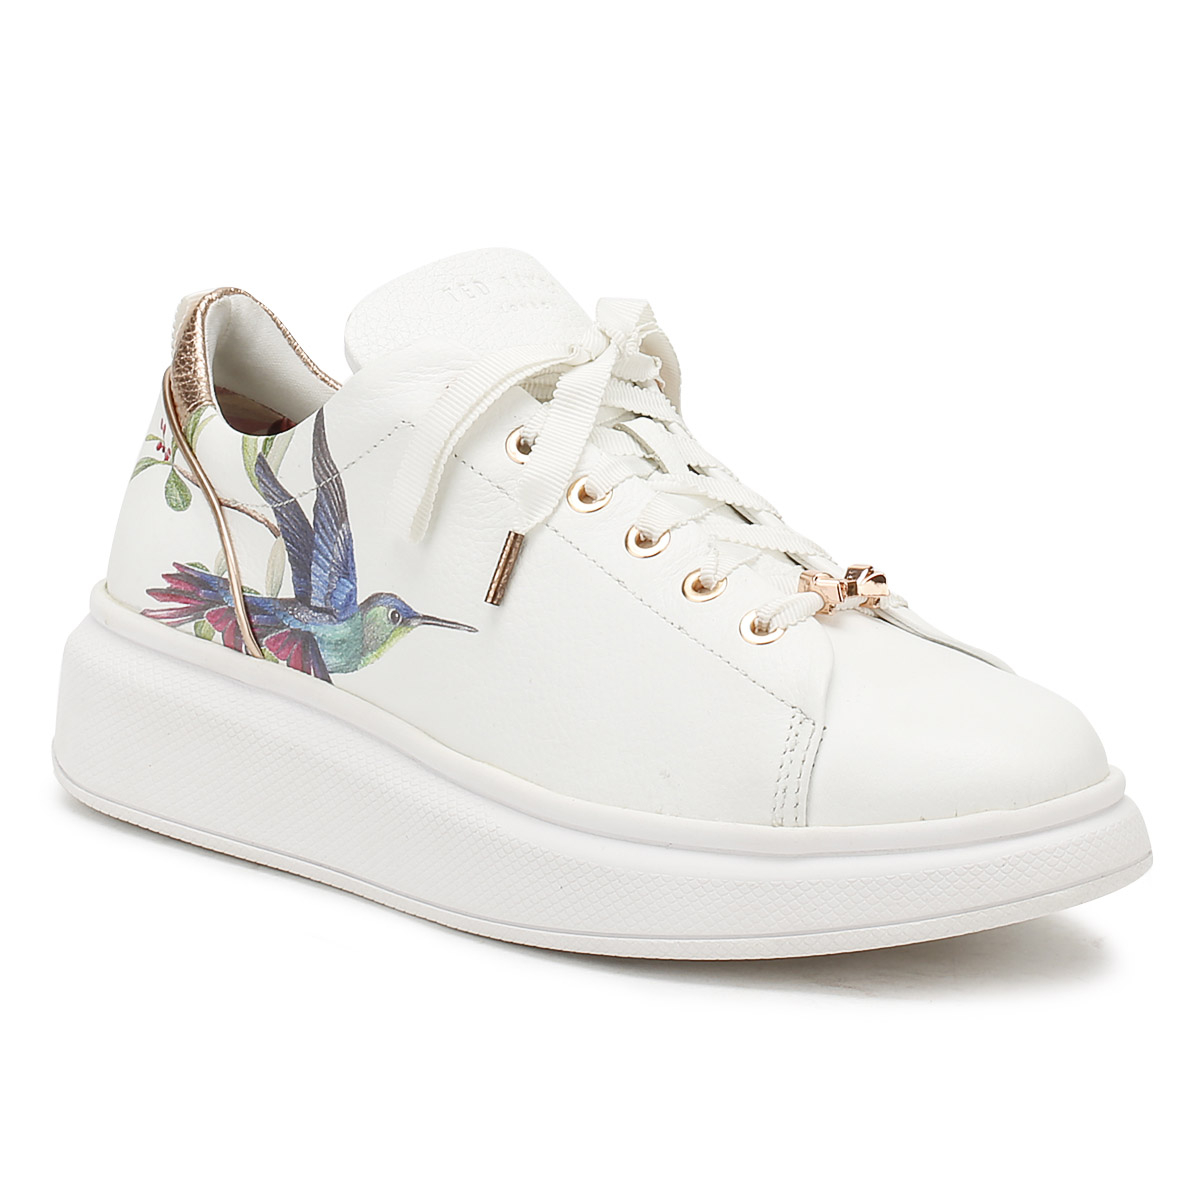 679562c69cd Ted Baker Womens White Ailbe Trainers Ladies Lace Up Sport Casual Shoes